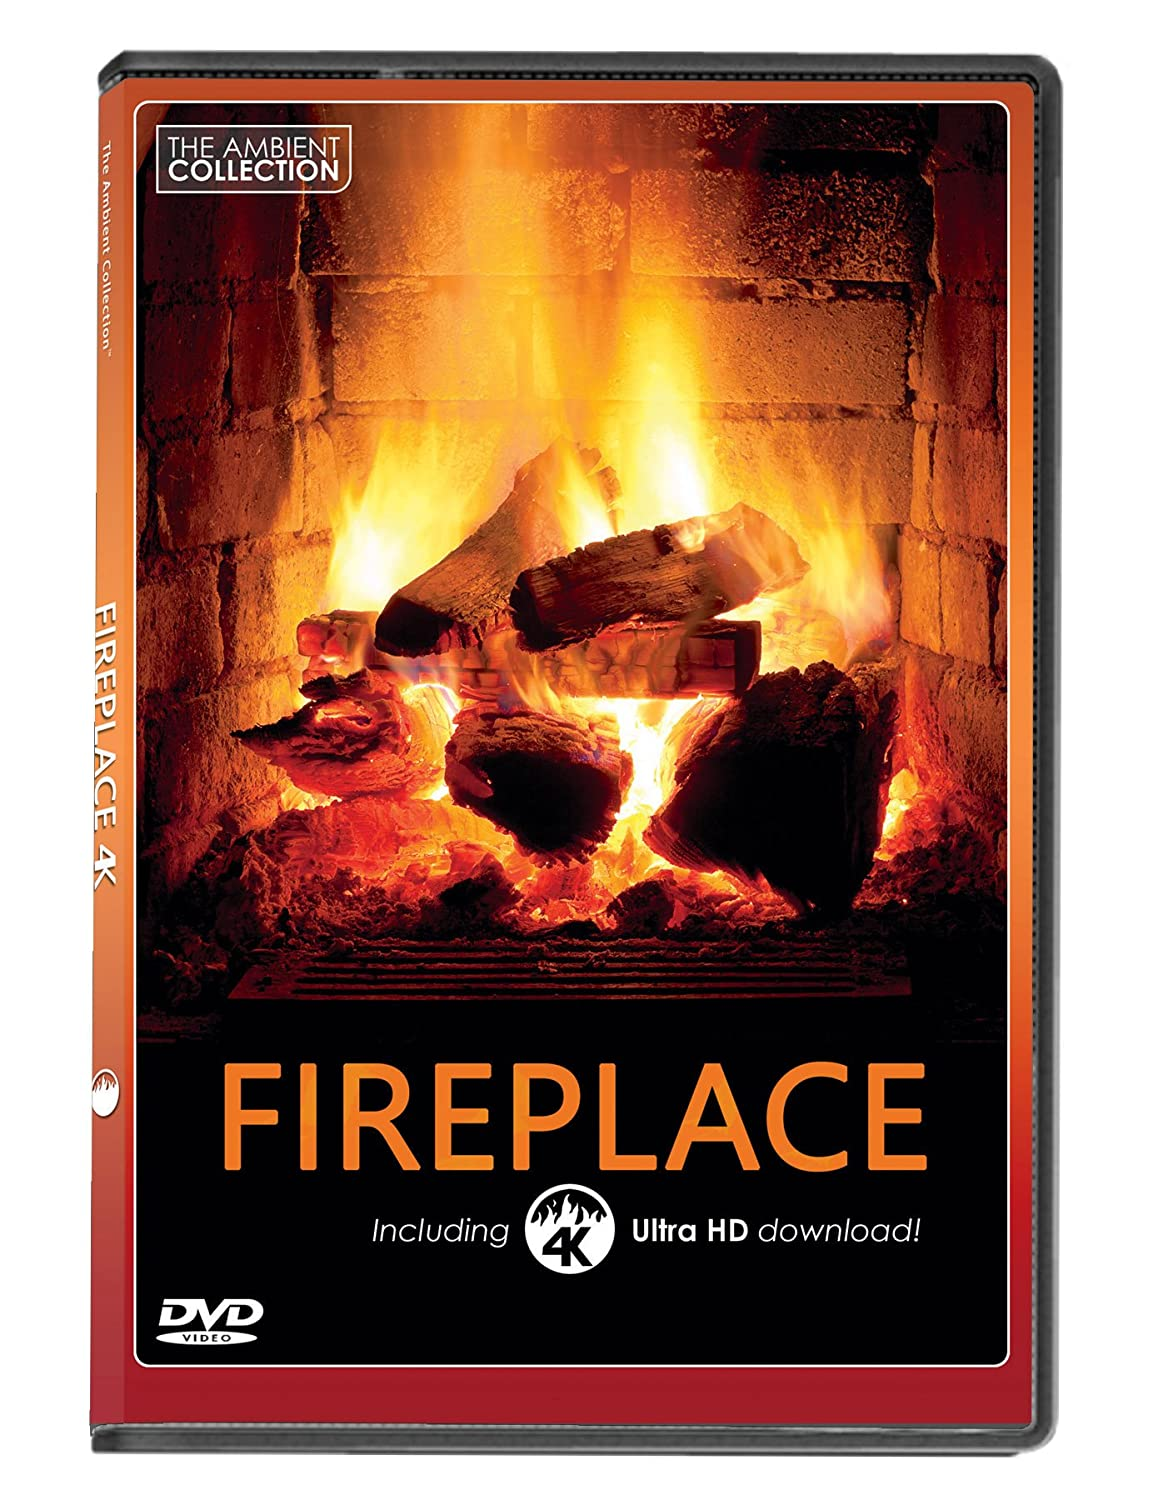 Amazon com: FIRE DVD   FIREPLACE with 4K ULTRA HD Download